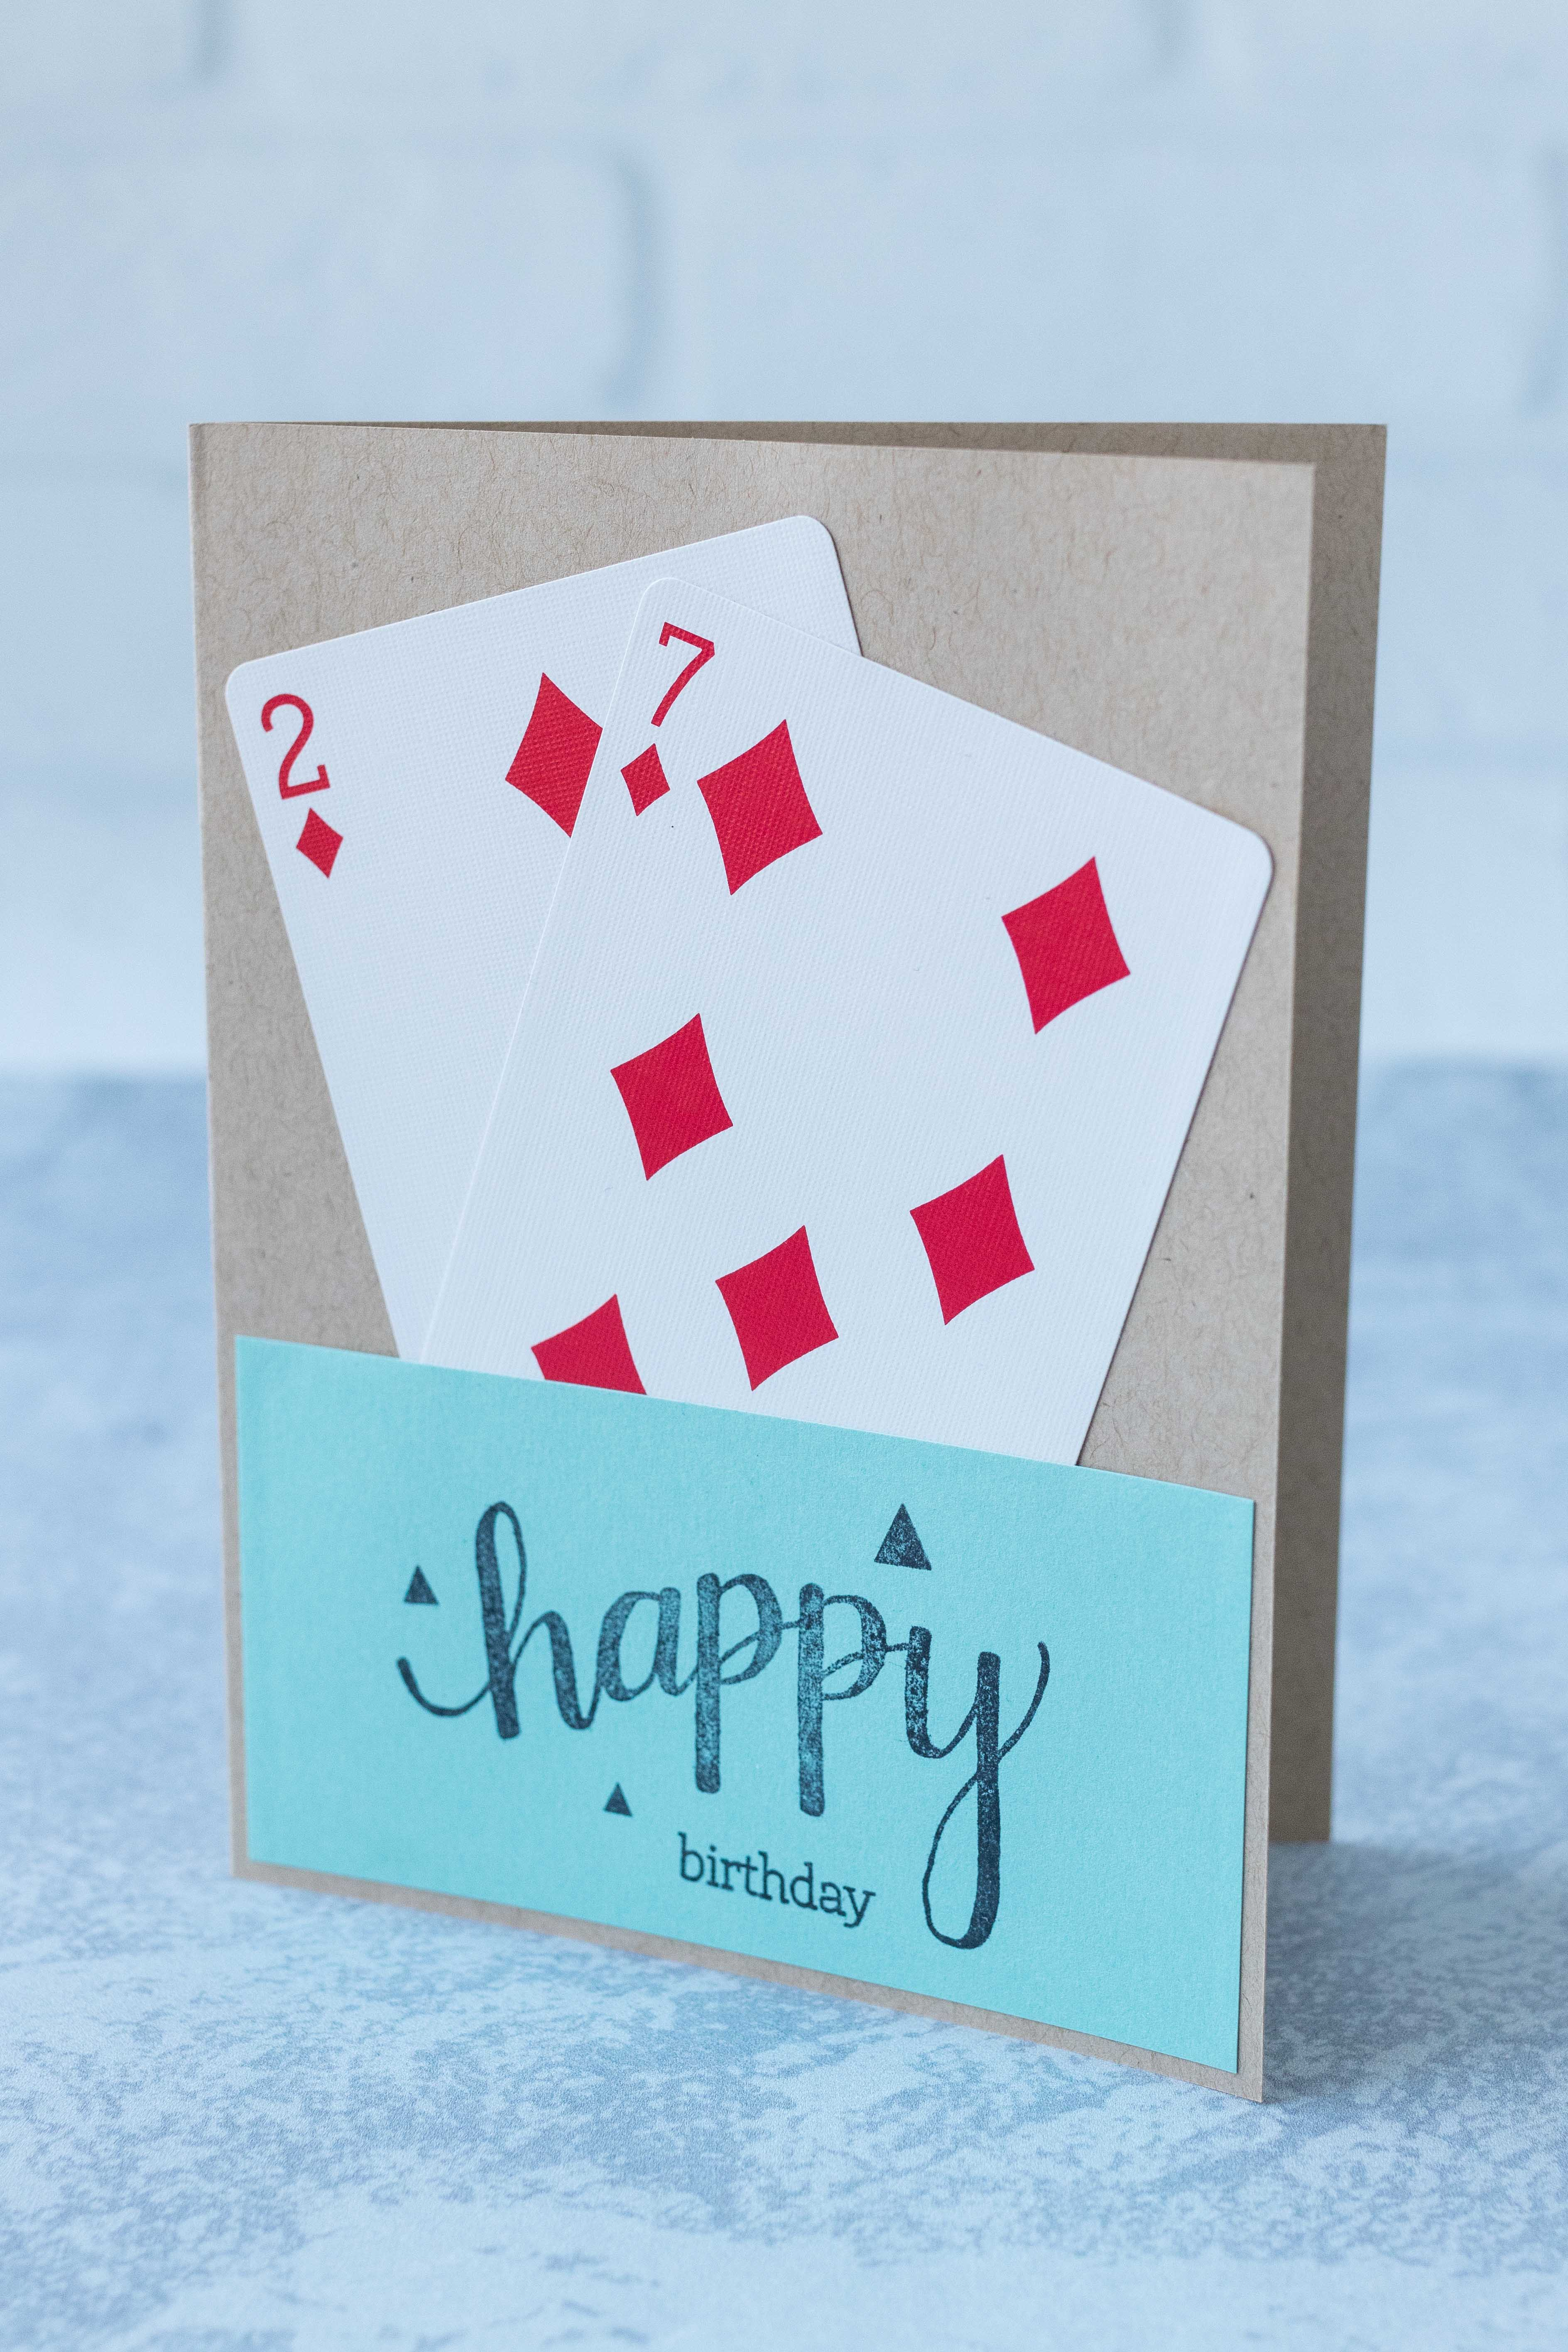 Homemade birthday card with playing card numbers for the age of the card recipient. #birthdaycard #playingcards #greetingcardinspiration | https://www.roseclearfield.com